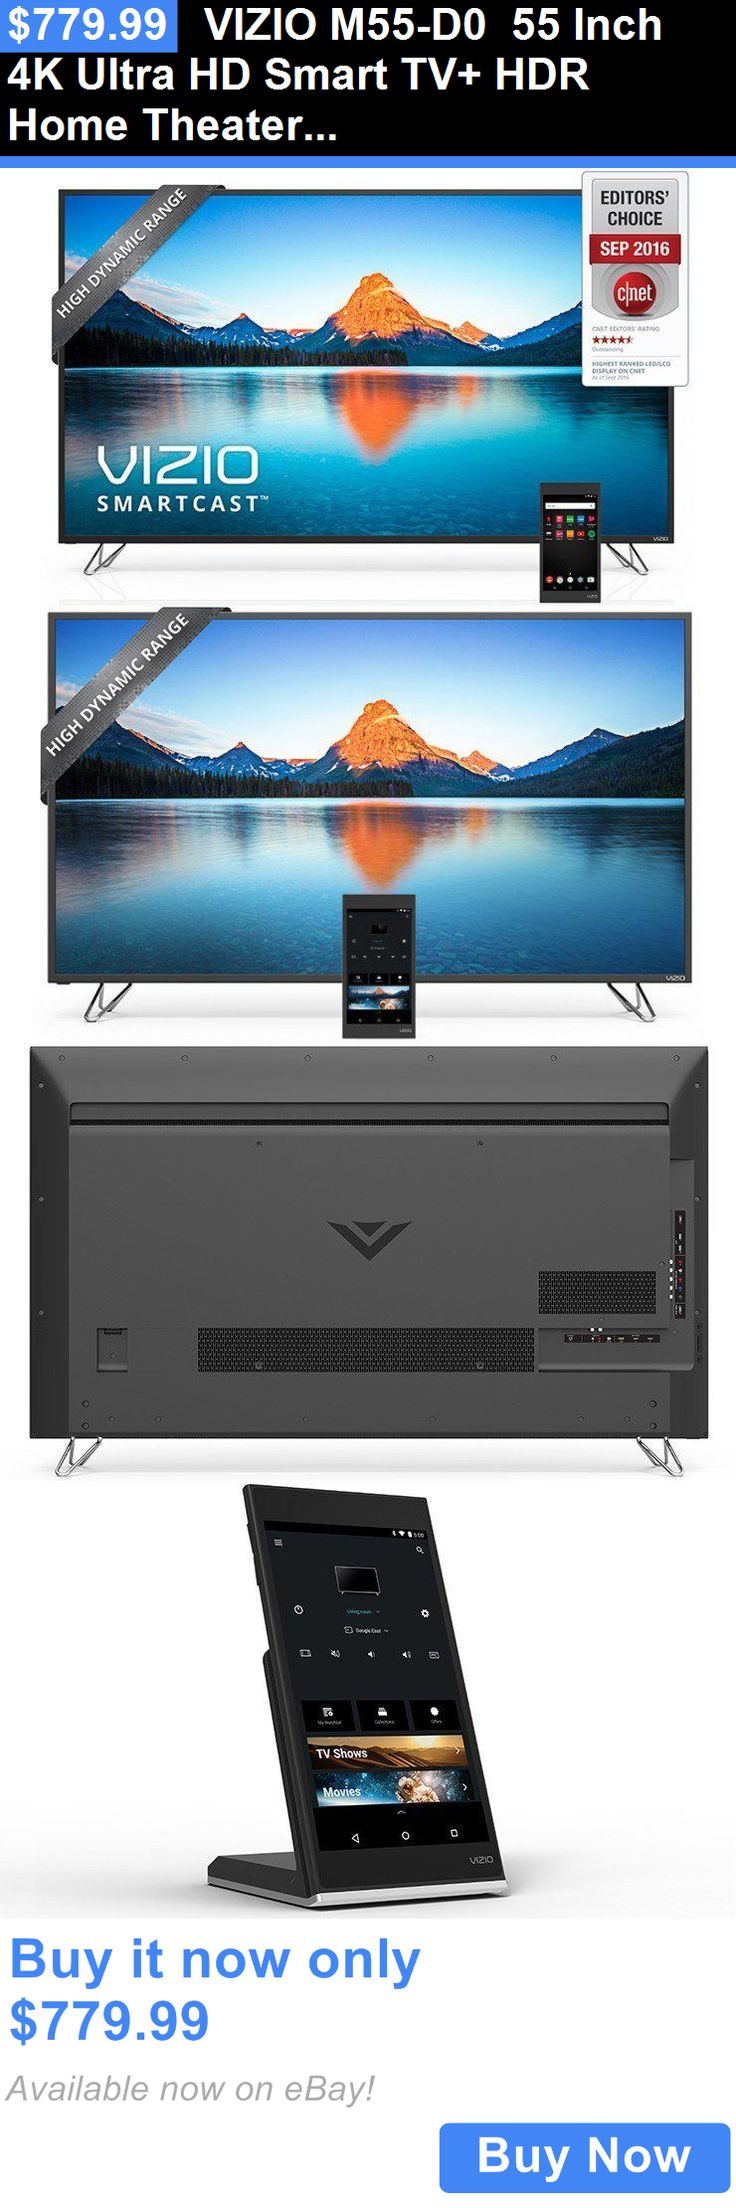 Smart TV: Vizio M55-D0 55 Inch 4K Ultra Hd Smart Tv+ Hdr Home Theater Display- Brand New! BUY IT NOW ONLY: $779.99